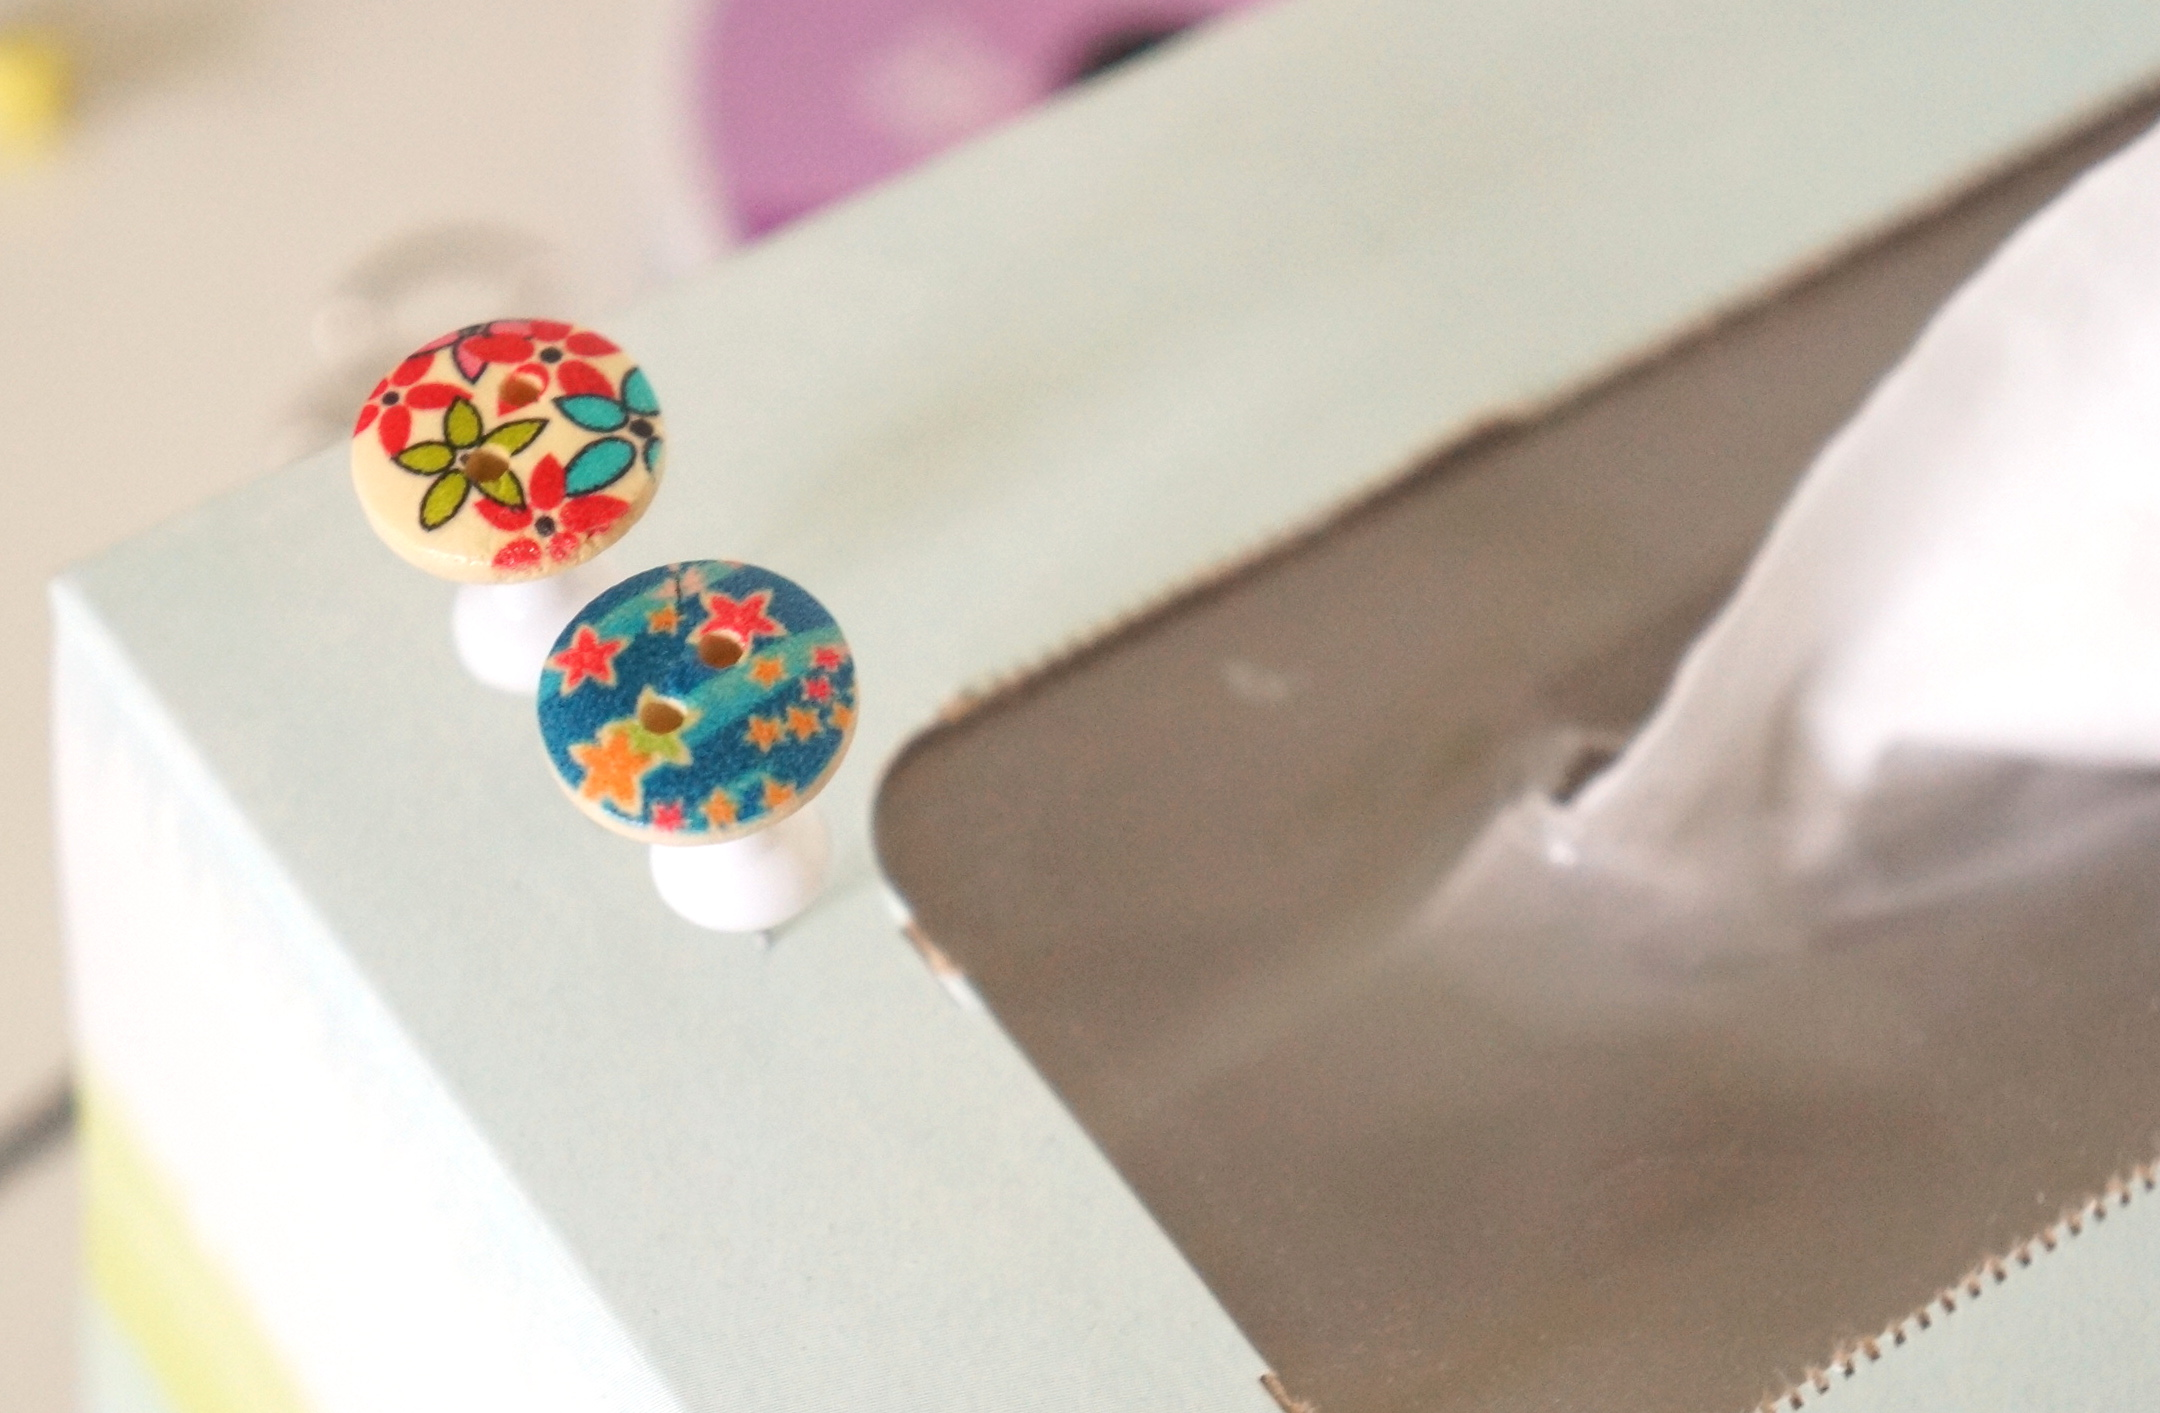 Take regular thumb tacks from office supply stores, and super glue cute buttons on them. | Handmade Fashion at Candy & Bagel